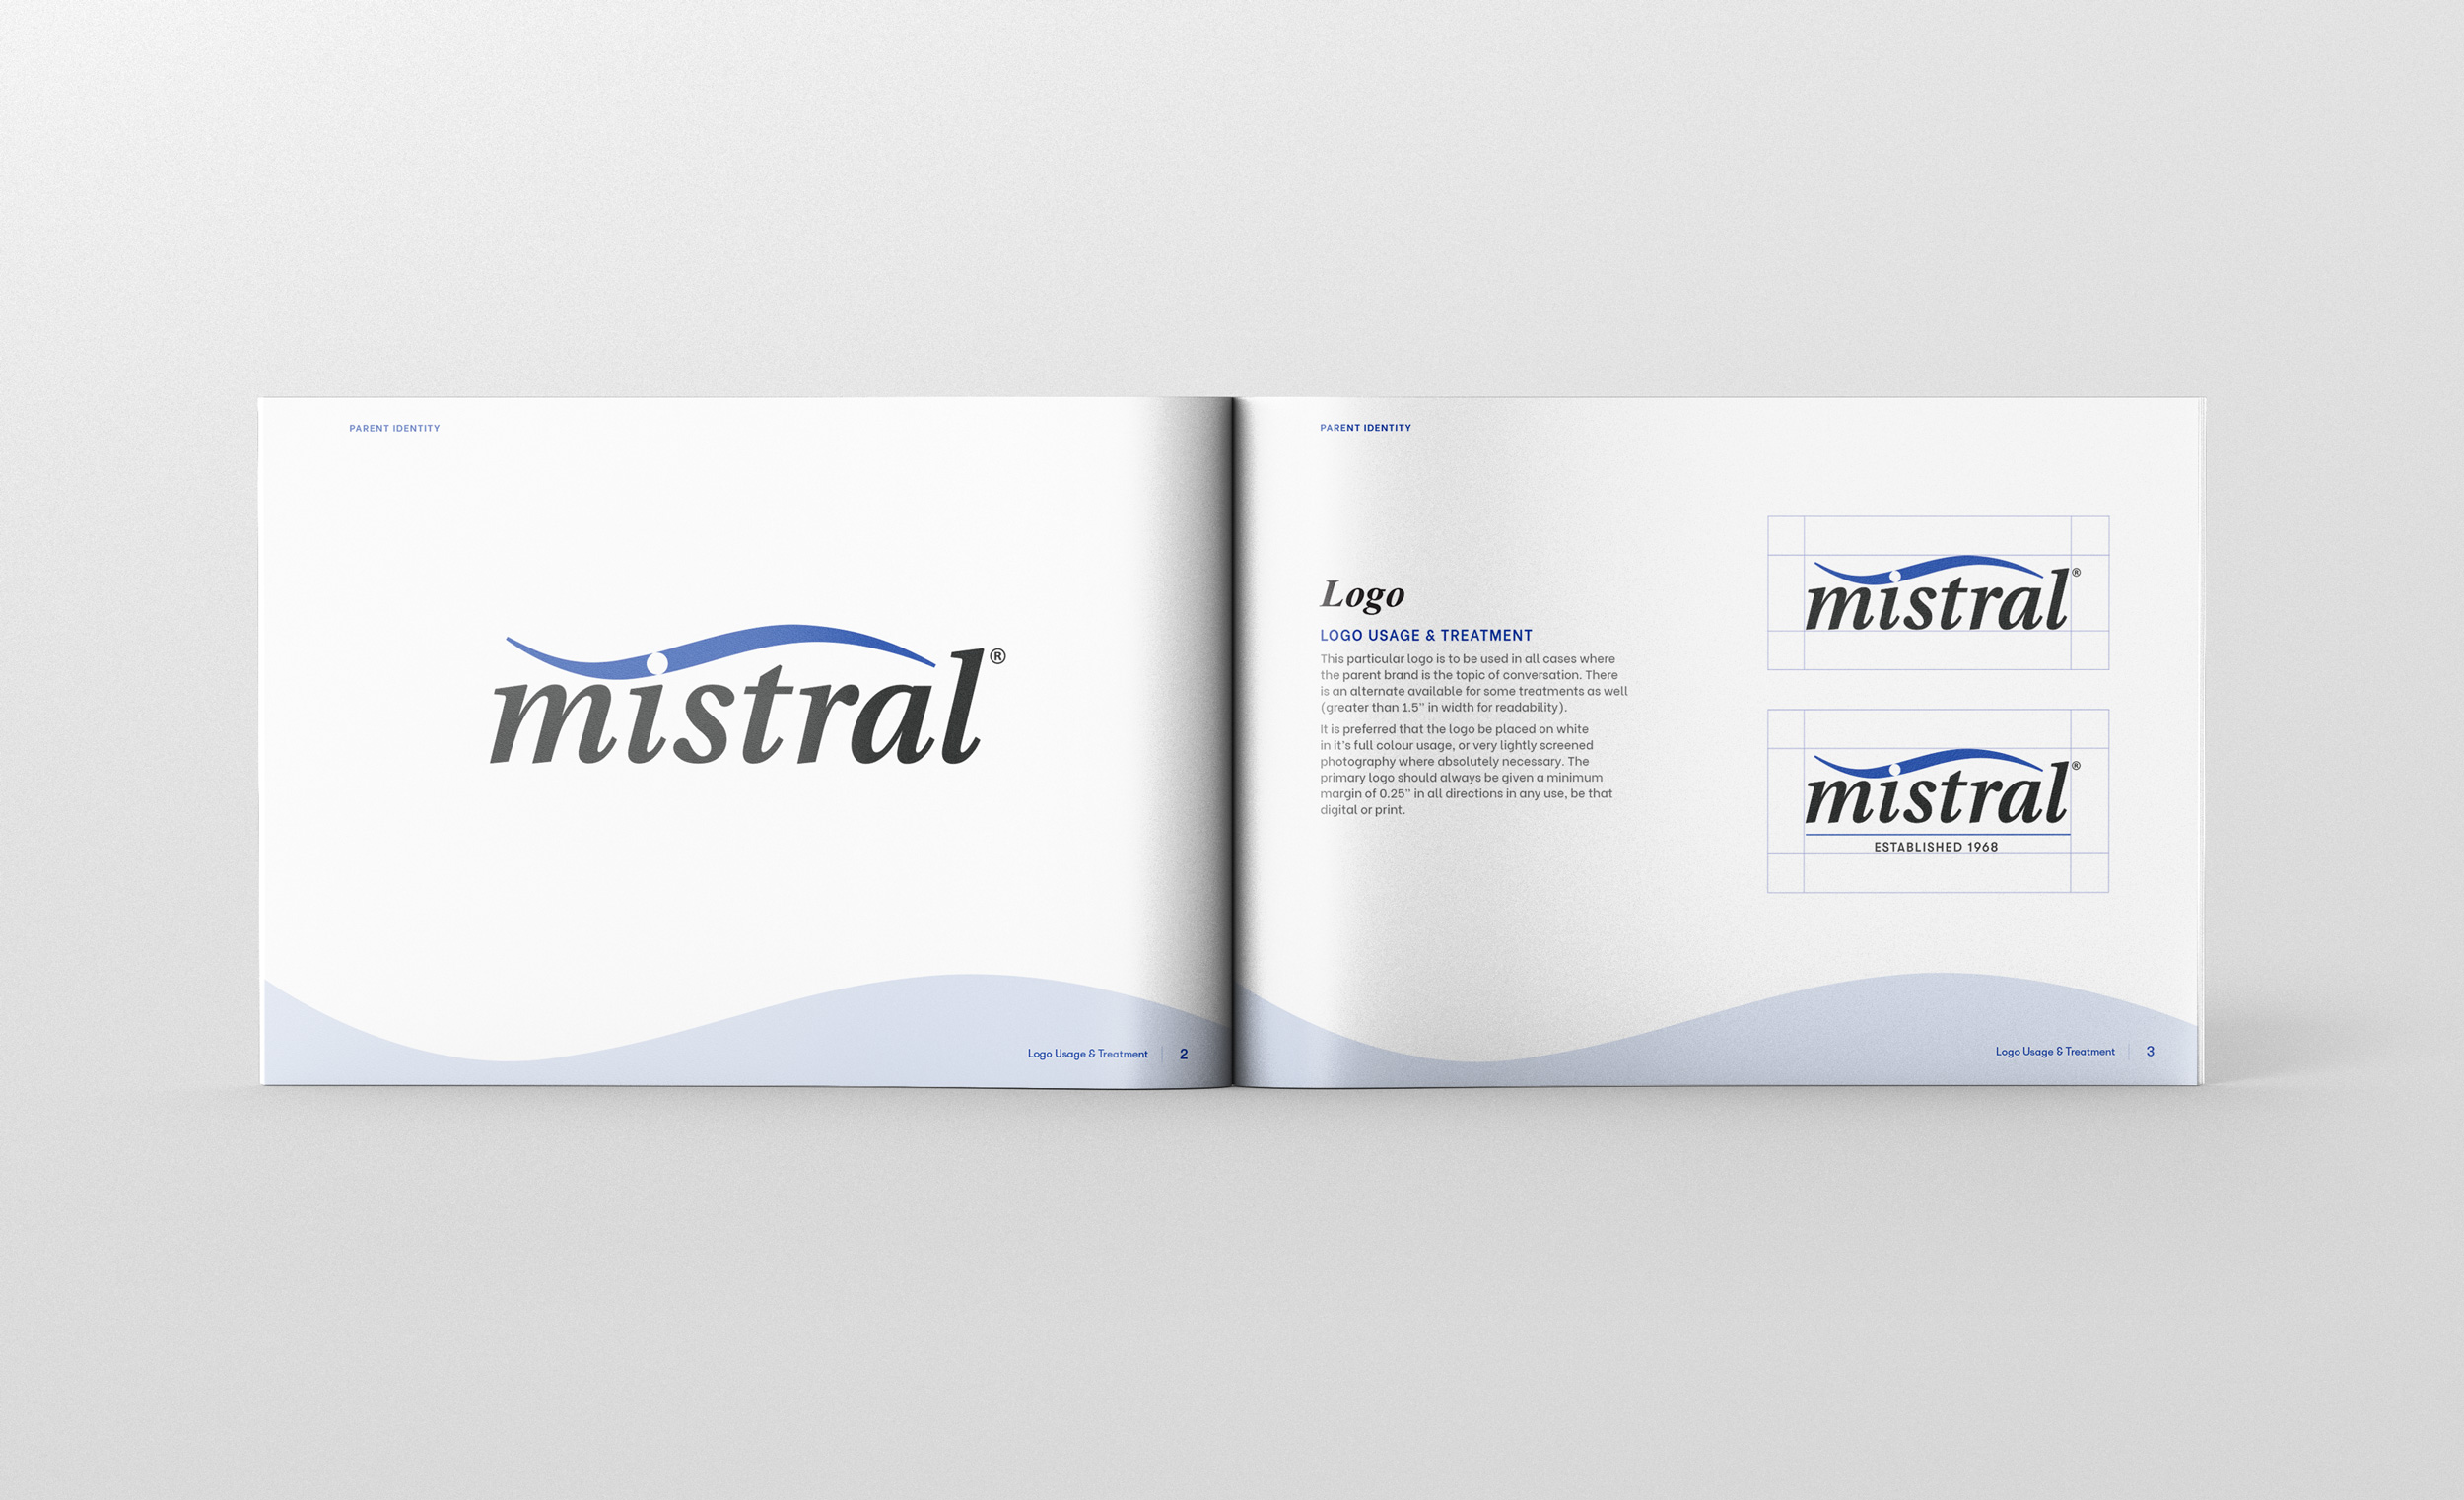 Mistral Packaging Style Guide